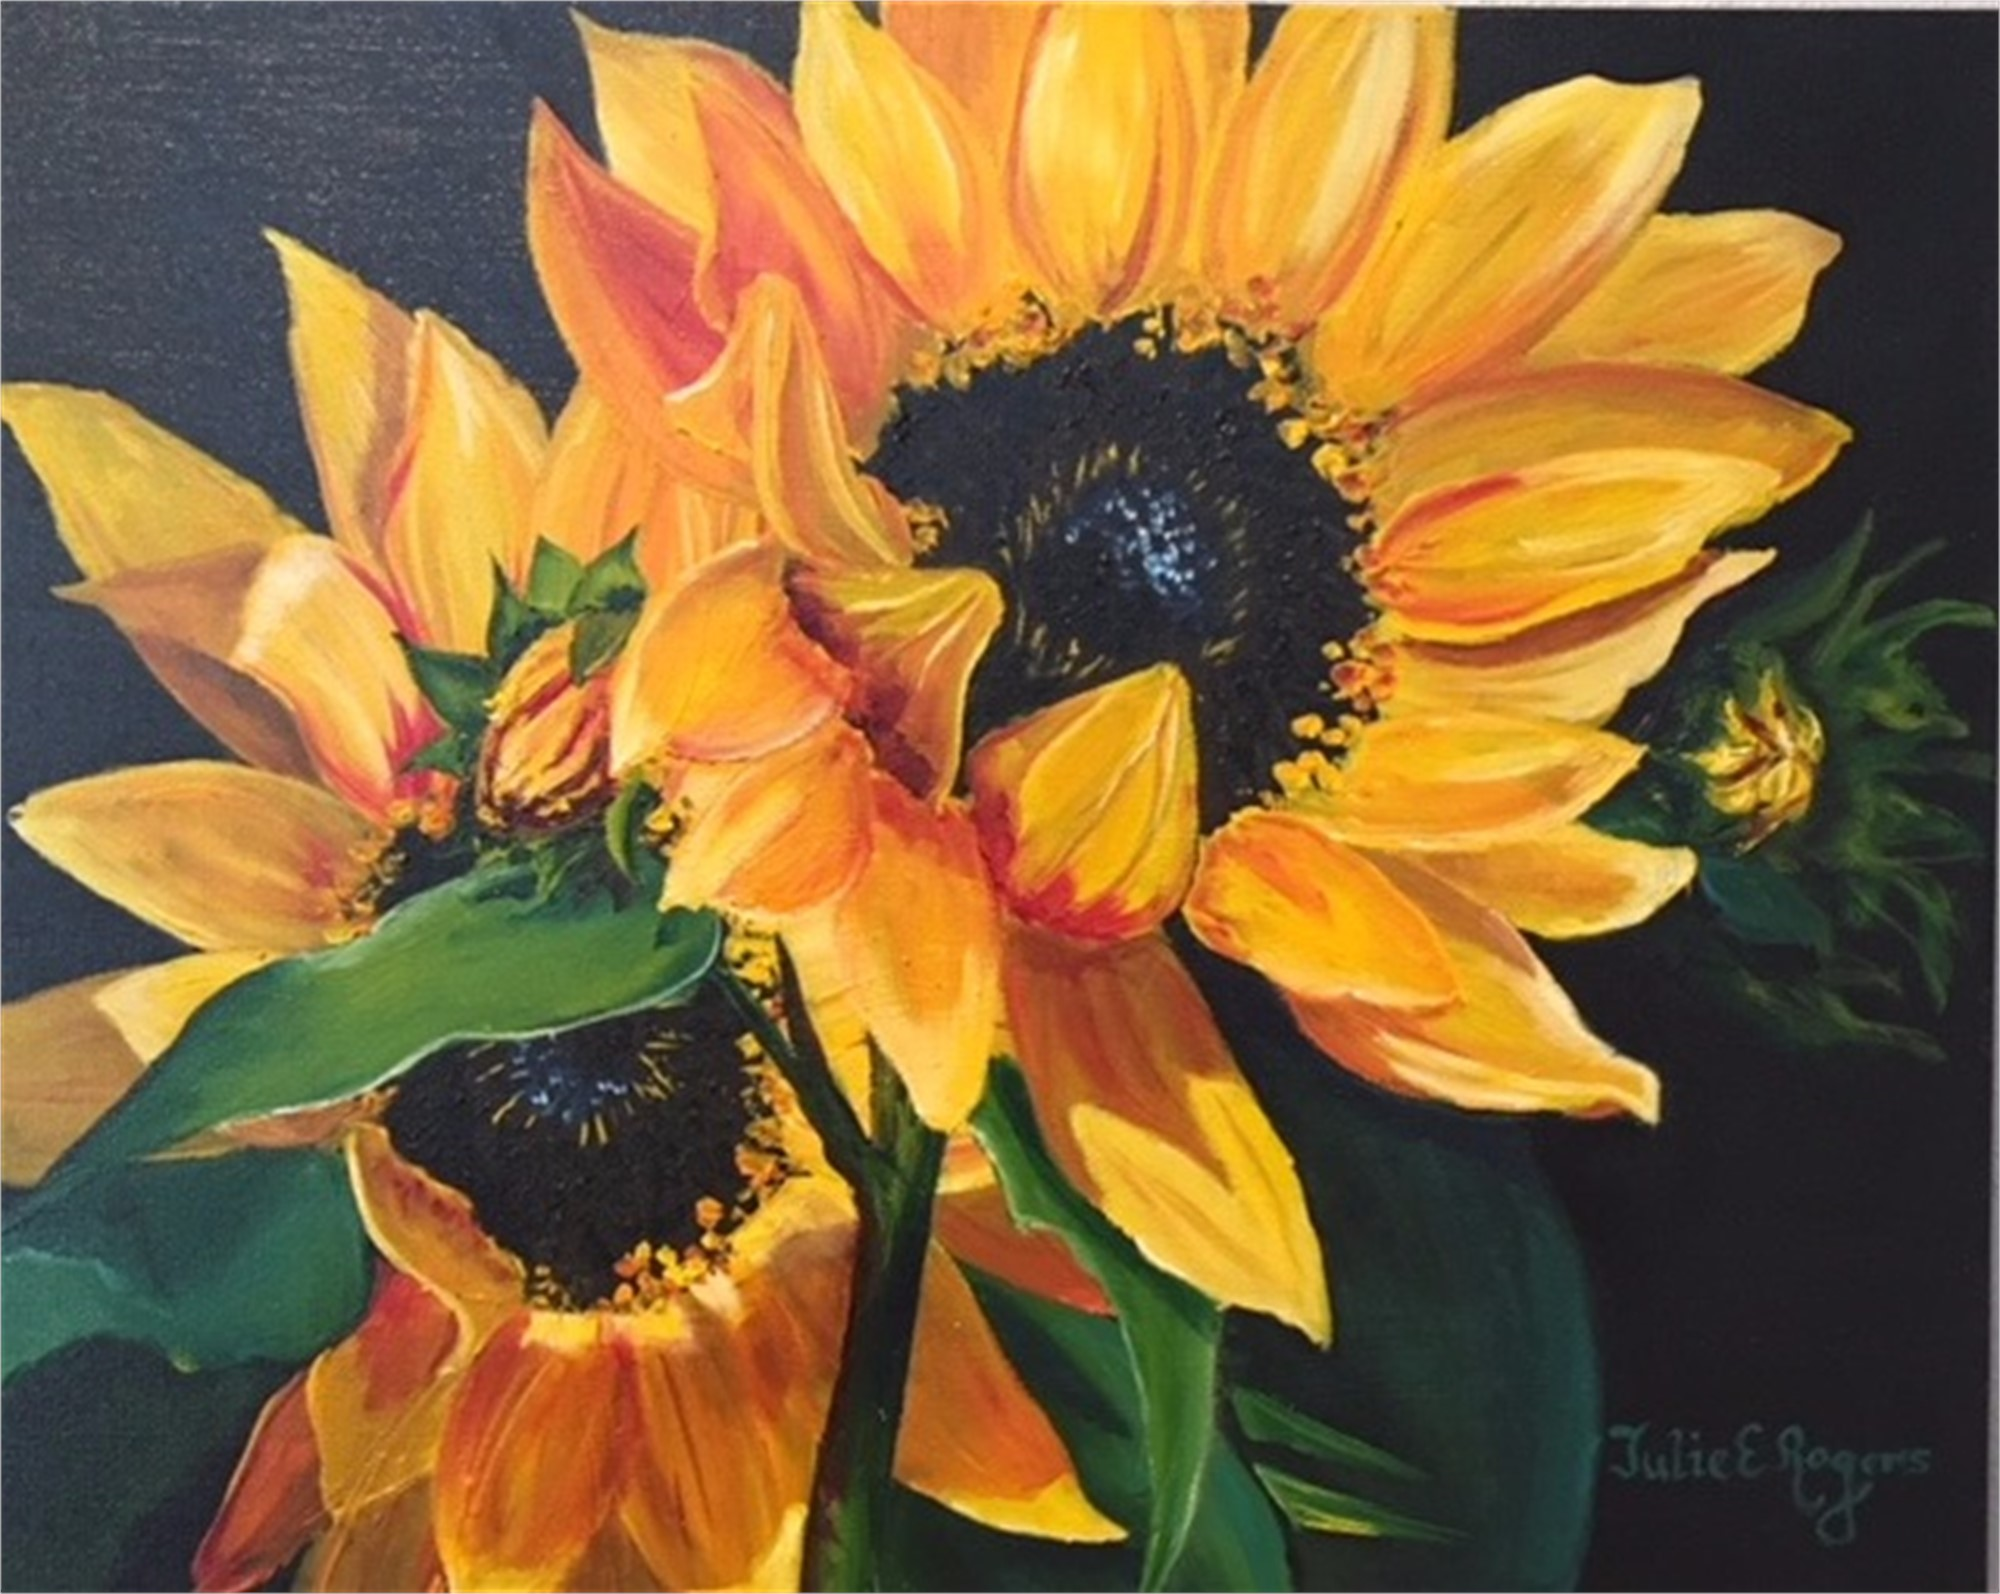 Sunflowers #6 by Julie Rogers